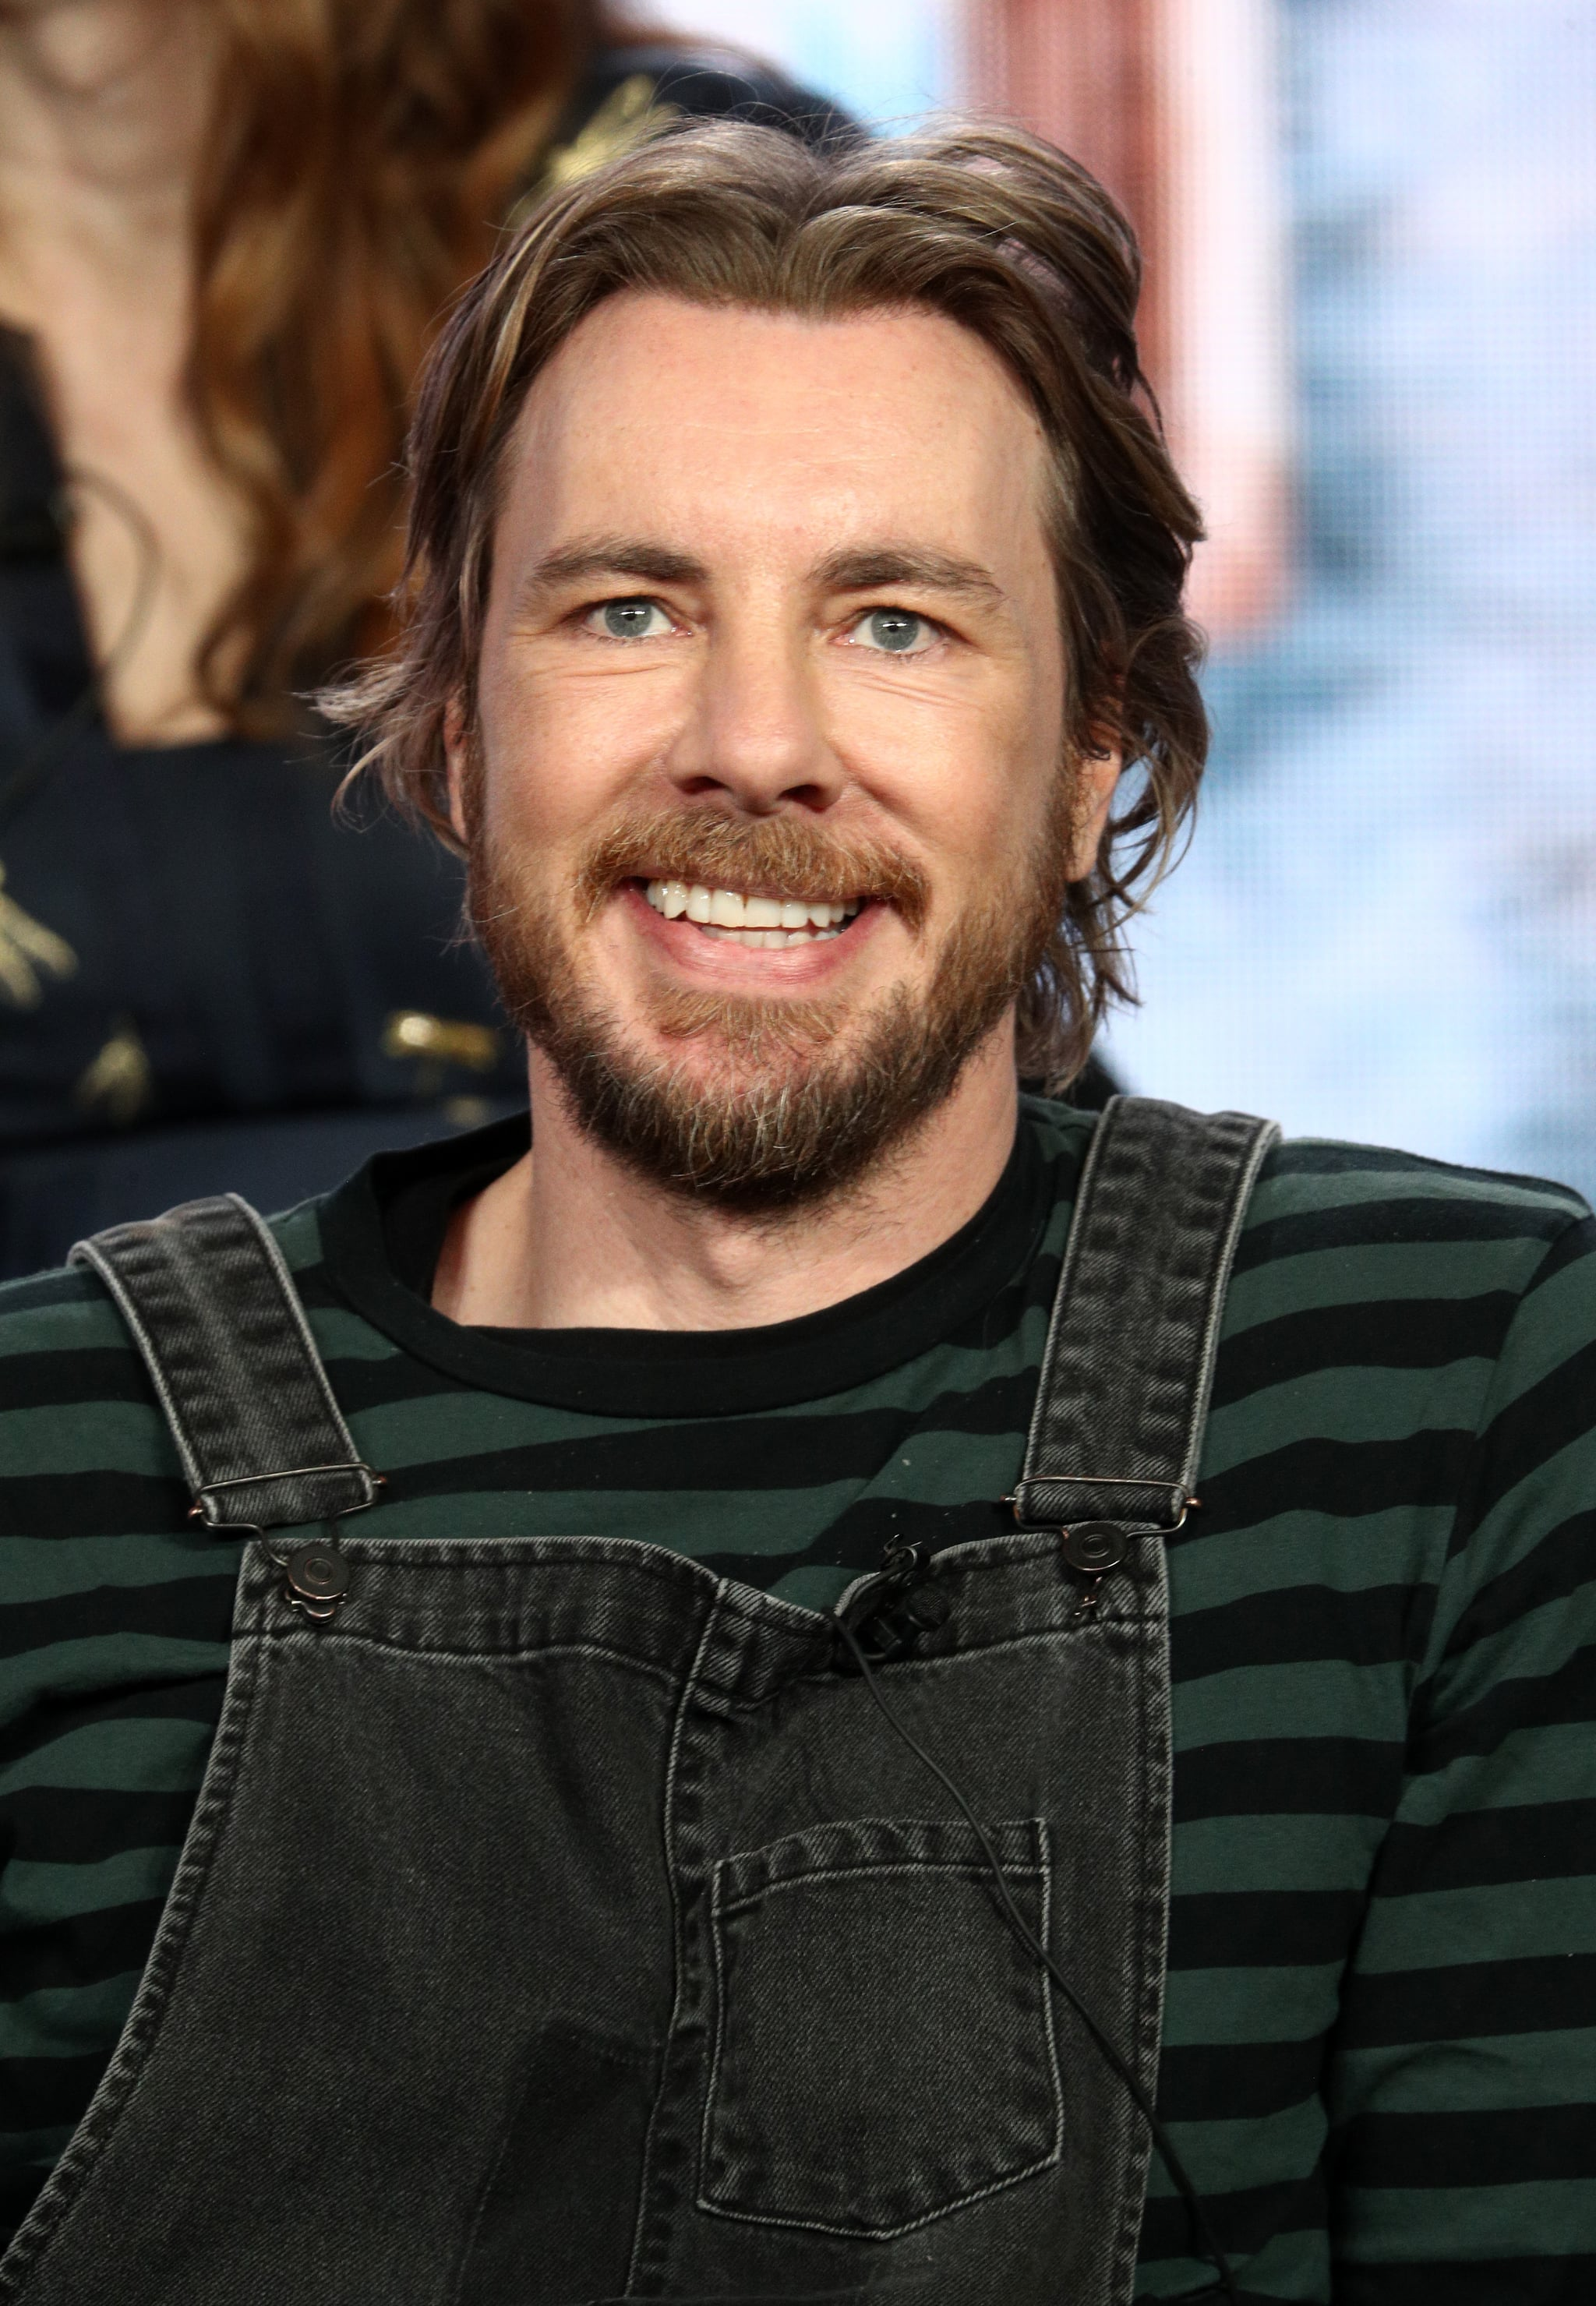 PASADENA, CALIFORNIA - FEBRUARY 05: Dax Shepard of the television show 'Bless This Mess' speaks during the ABC segment of the 2019 Winter Television Critics Association Press Tour at The Langham Huntington, Pasadena on February 05, 2019 in Pasadena, California. (Photo by Frederick M. Brown/Getty Images)